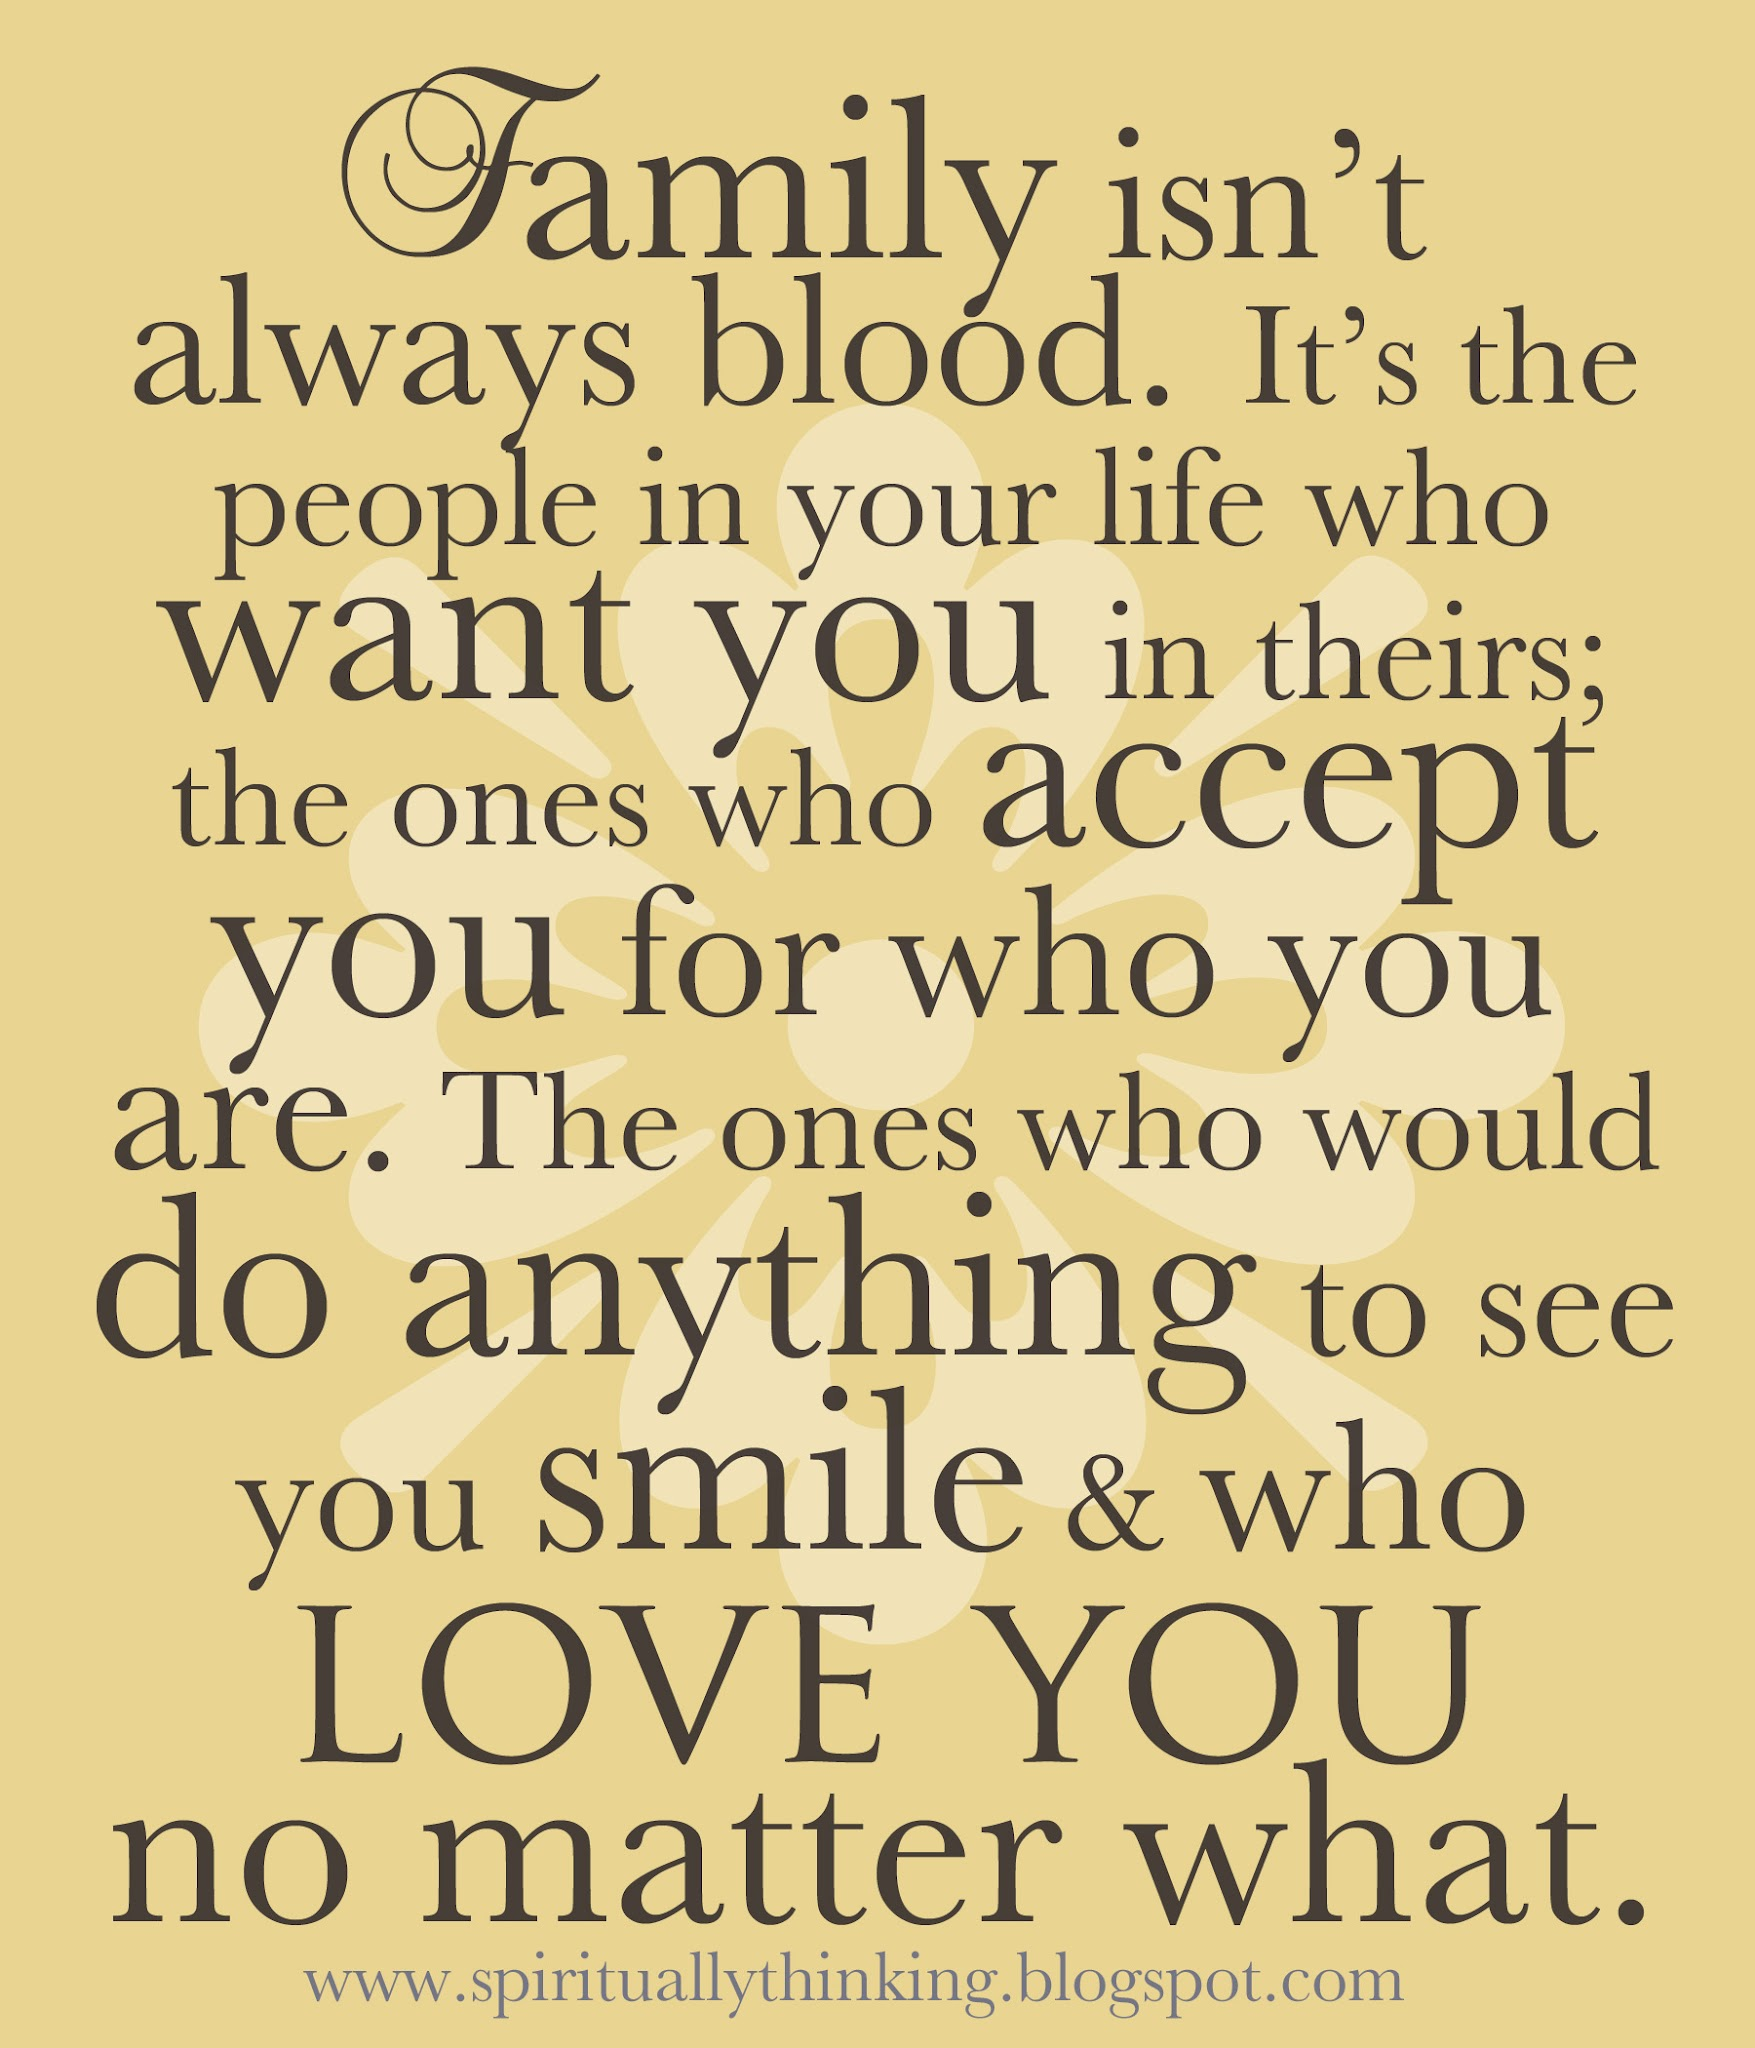 Quotes About Friendship And Family Quotes About Family Friendship 61 Quotes